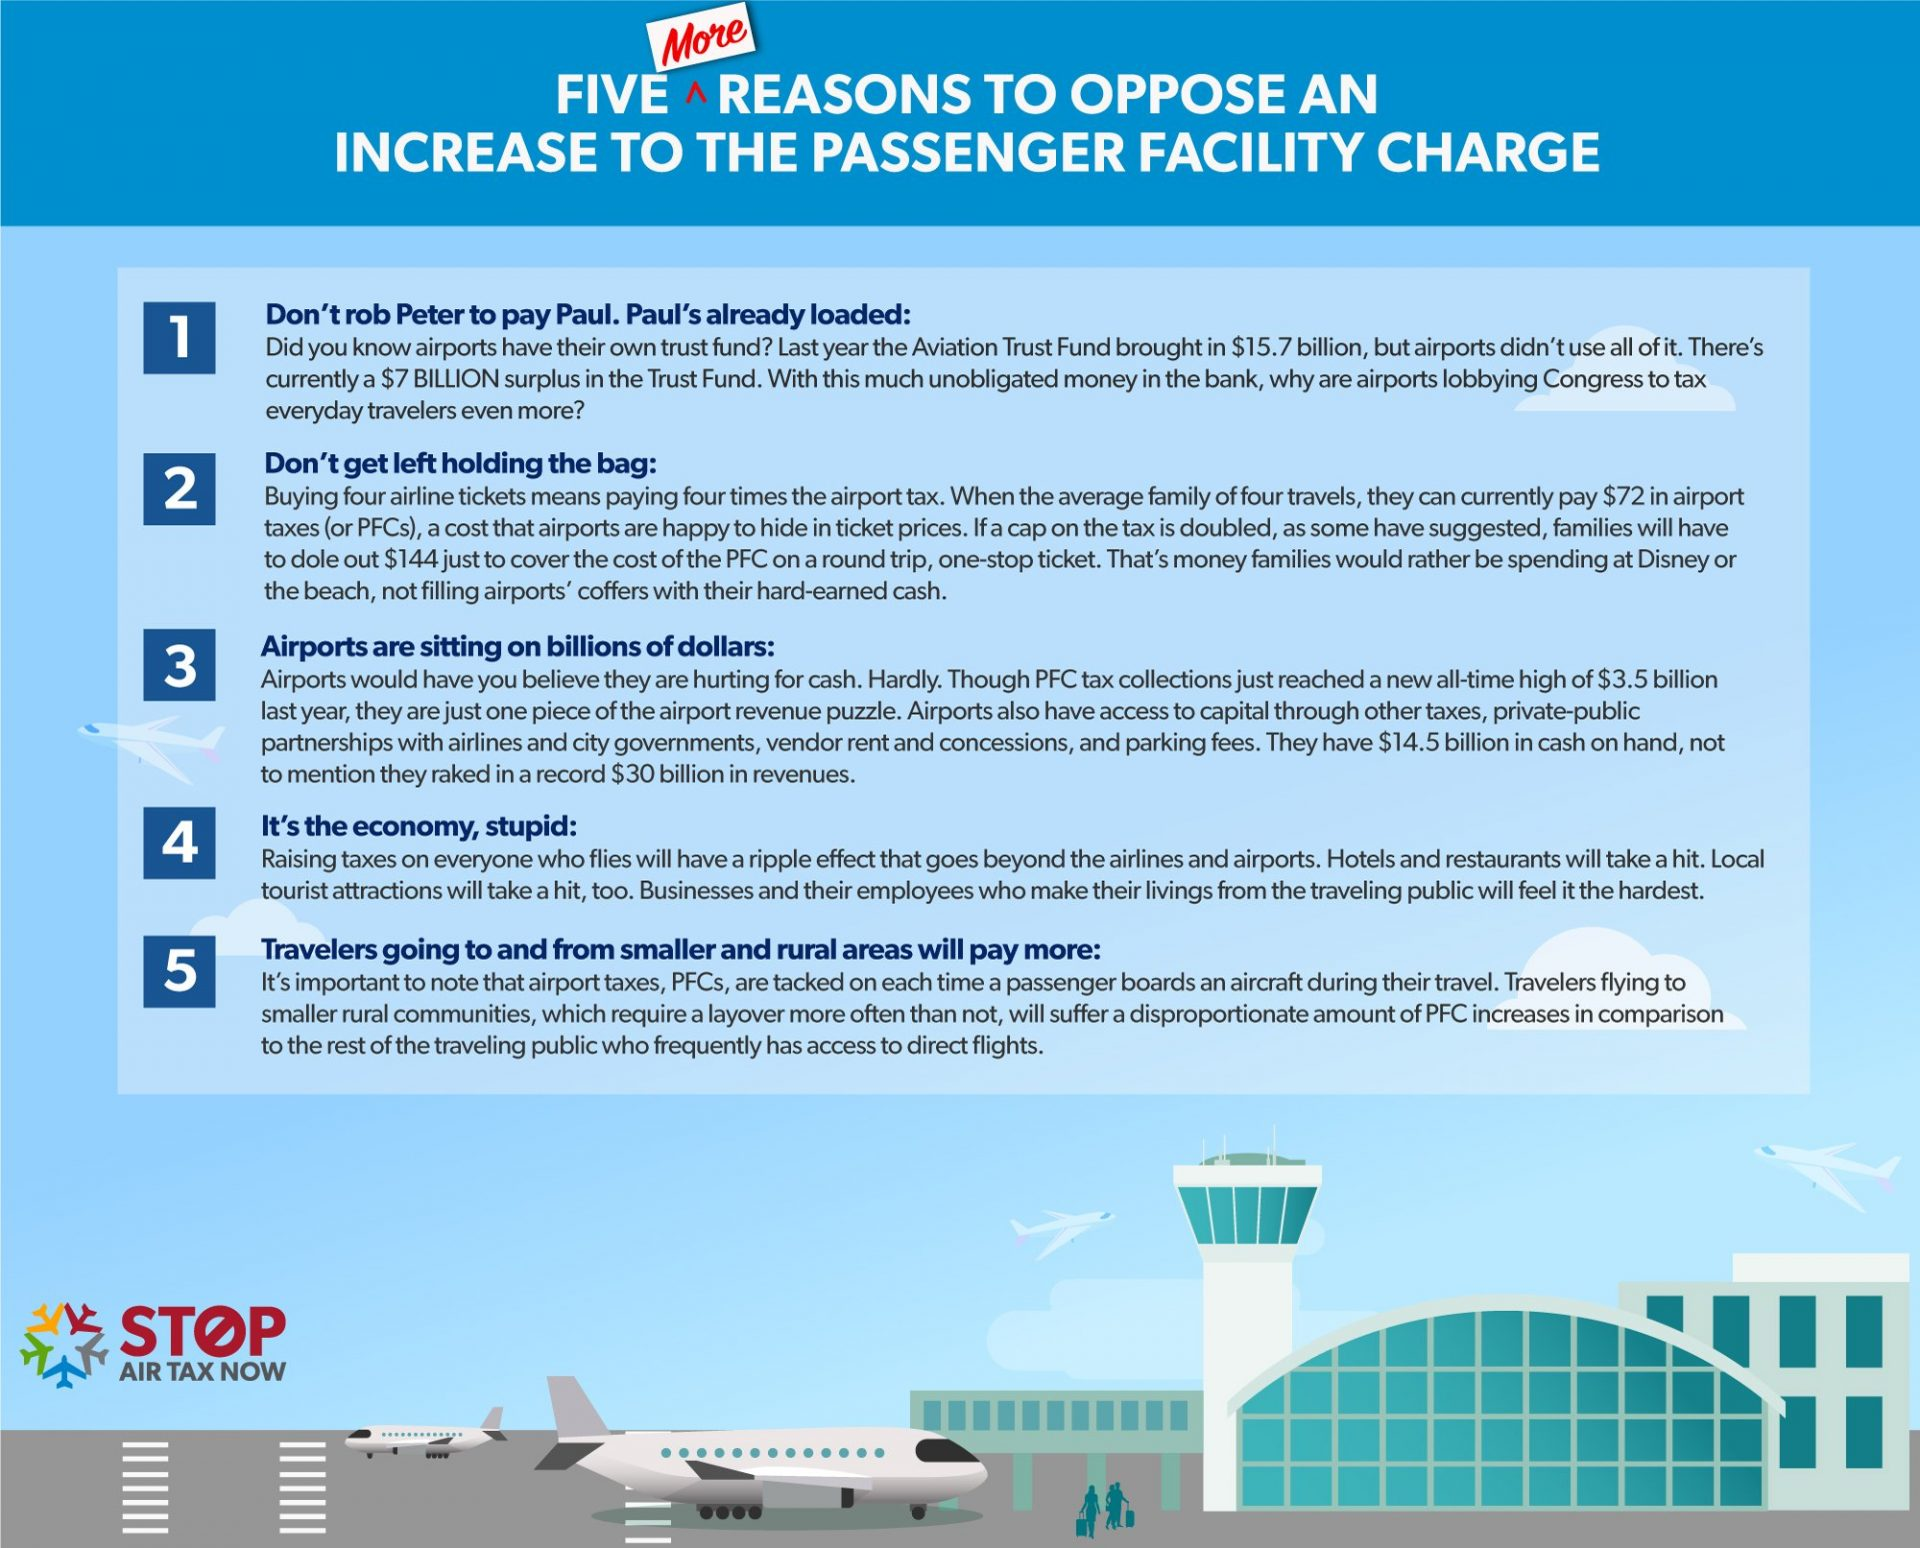 Five More Reasons to Oppose an Increase to the Passenger Facility Charge